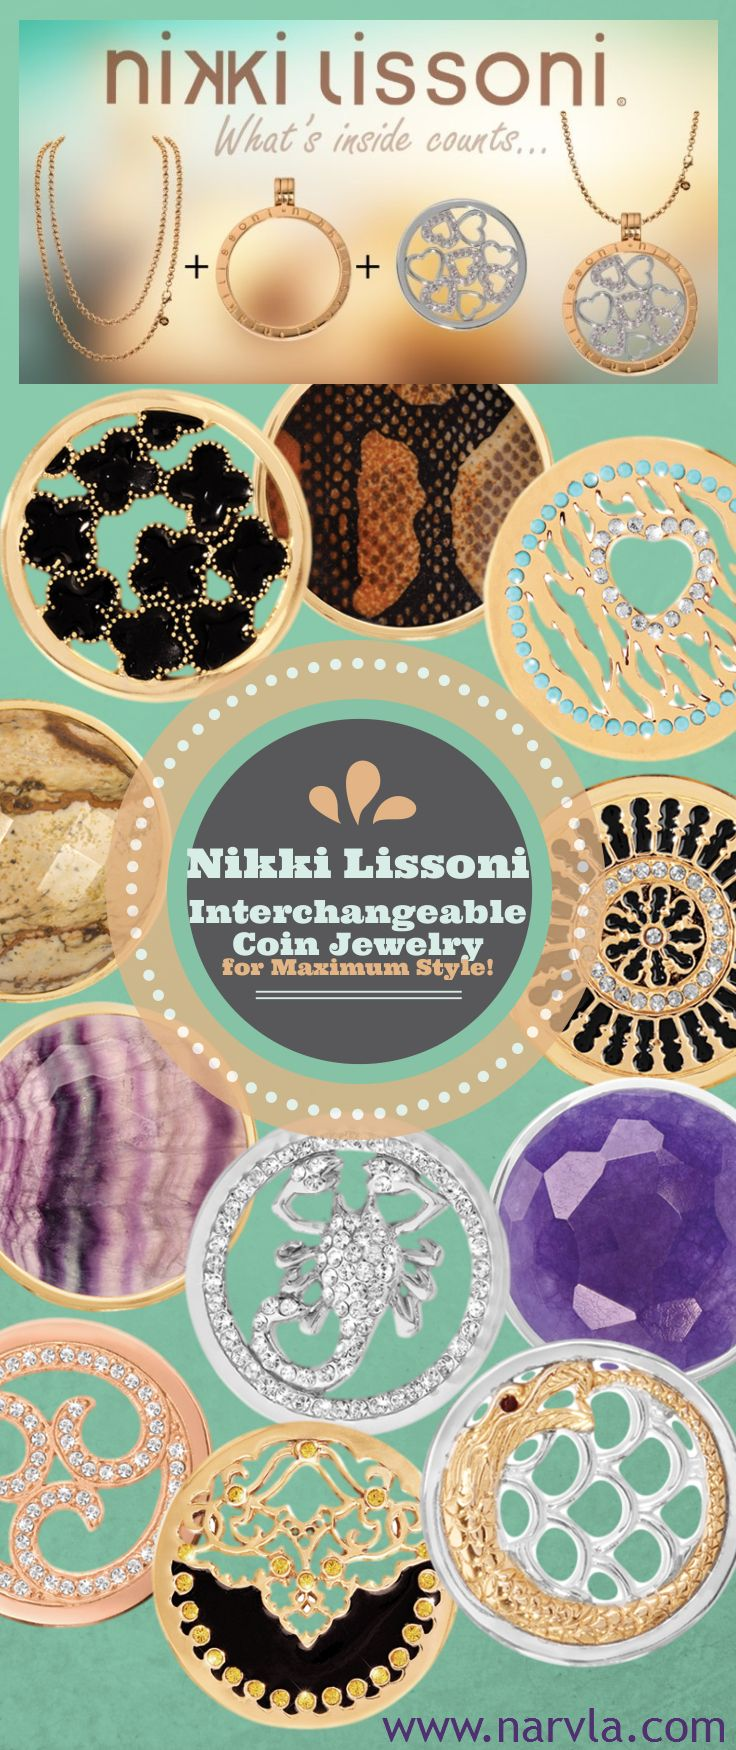 You'll find an ever-growing selection of Nikki Lissoni interchangeable coin jewelry on NarVla. Follow our Nikki Lissoni Pinterest board or join our newsletter subscribers to keep current on all we have to offer! #NikkiLissoni #jewelry #coinjewelry